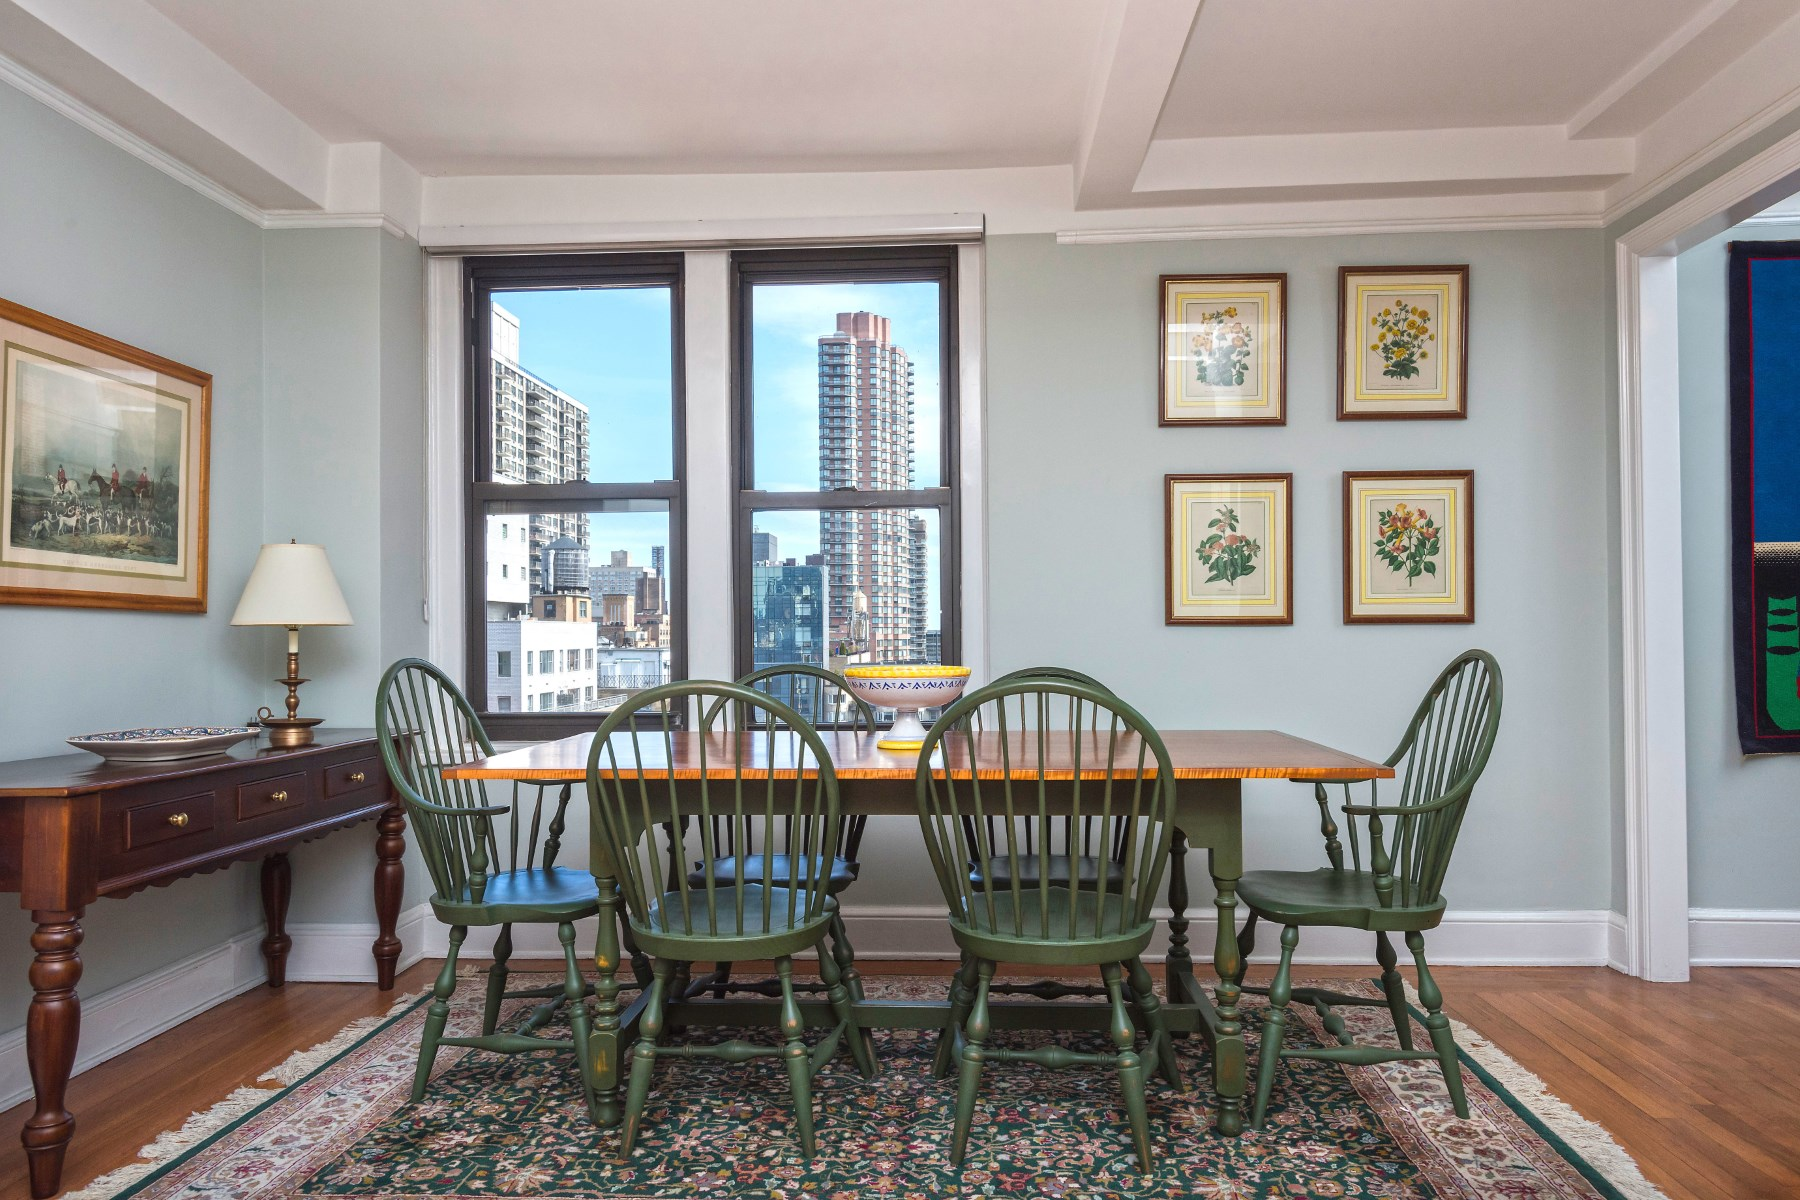 Co-op for Sale at 205 East 78th Street, Apt. 19T 205 East 78th Street Apt 19T Upper East Side, New York, New York, 10075 United States